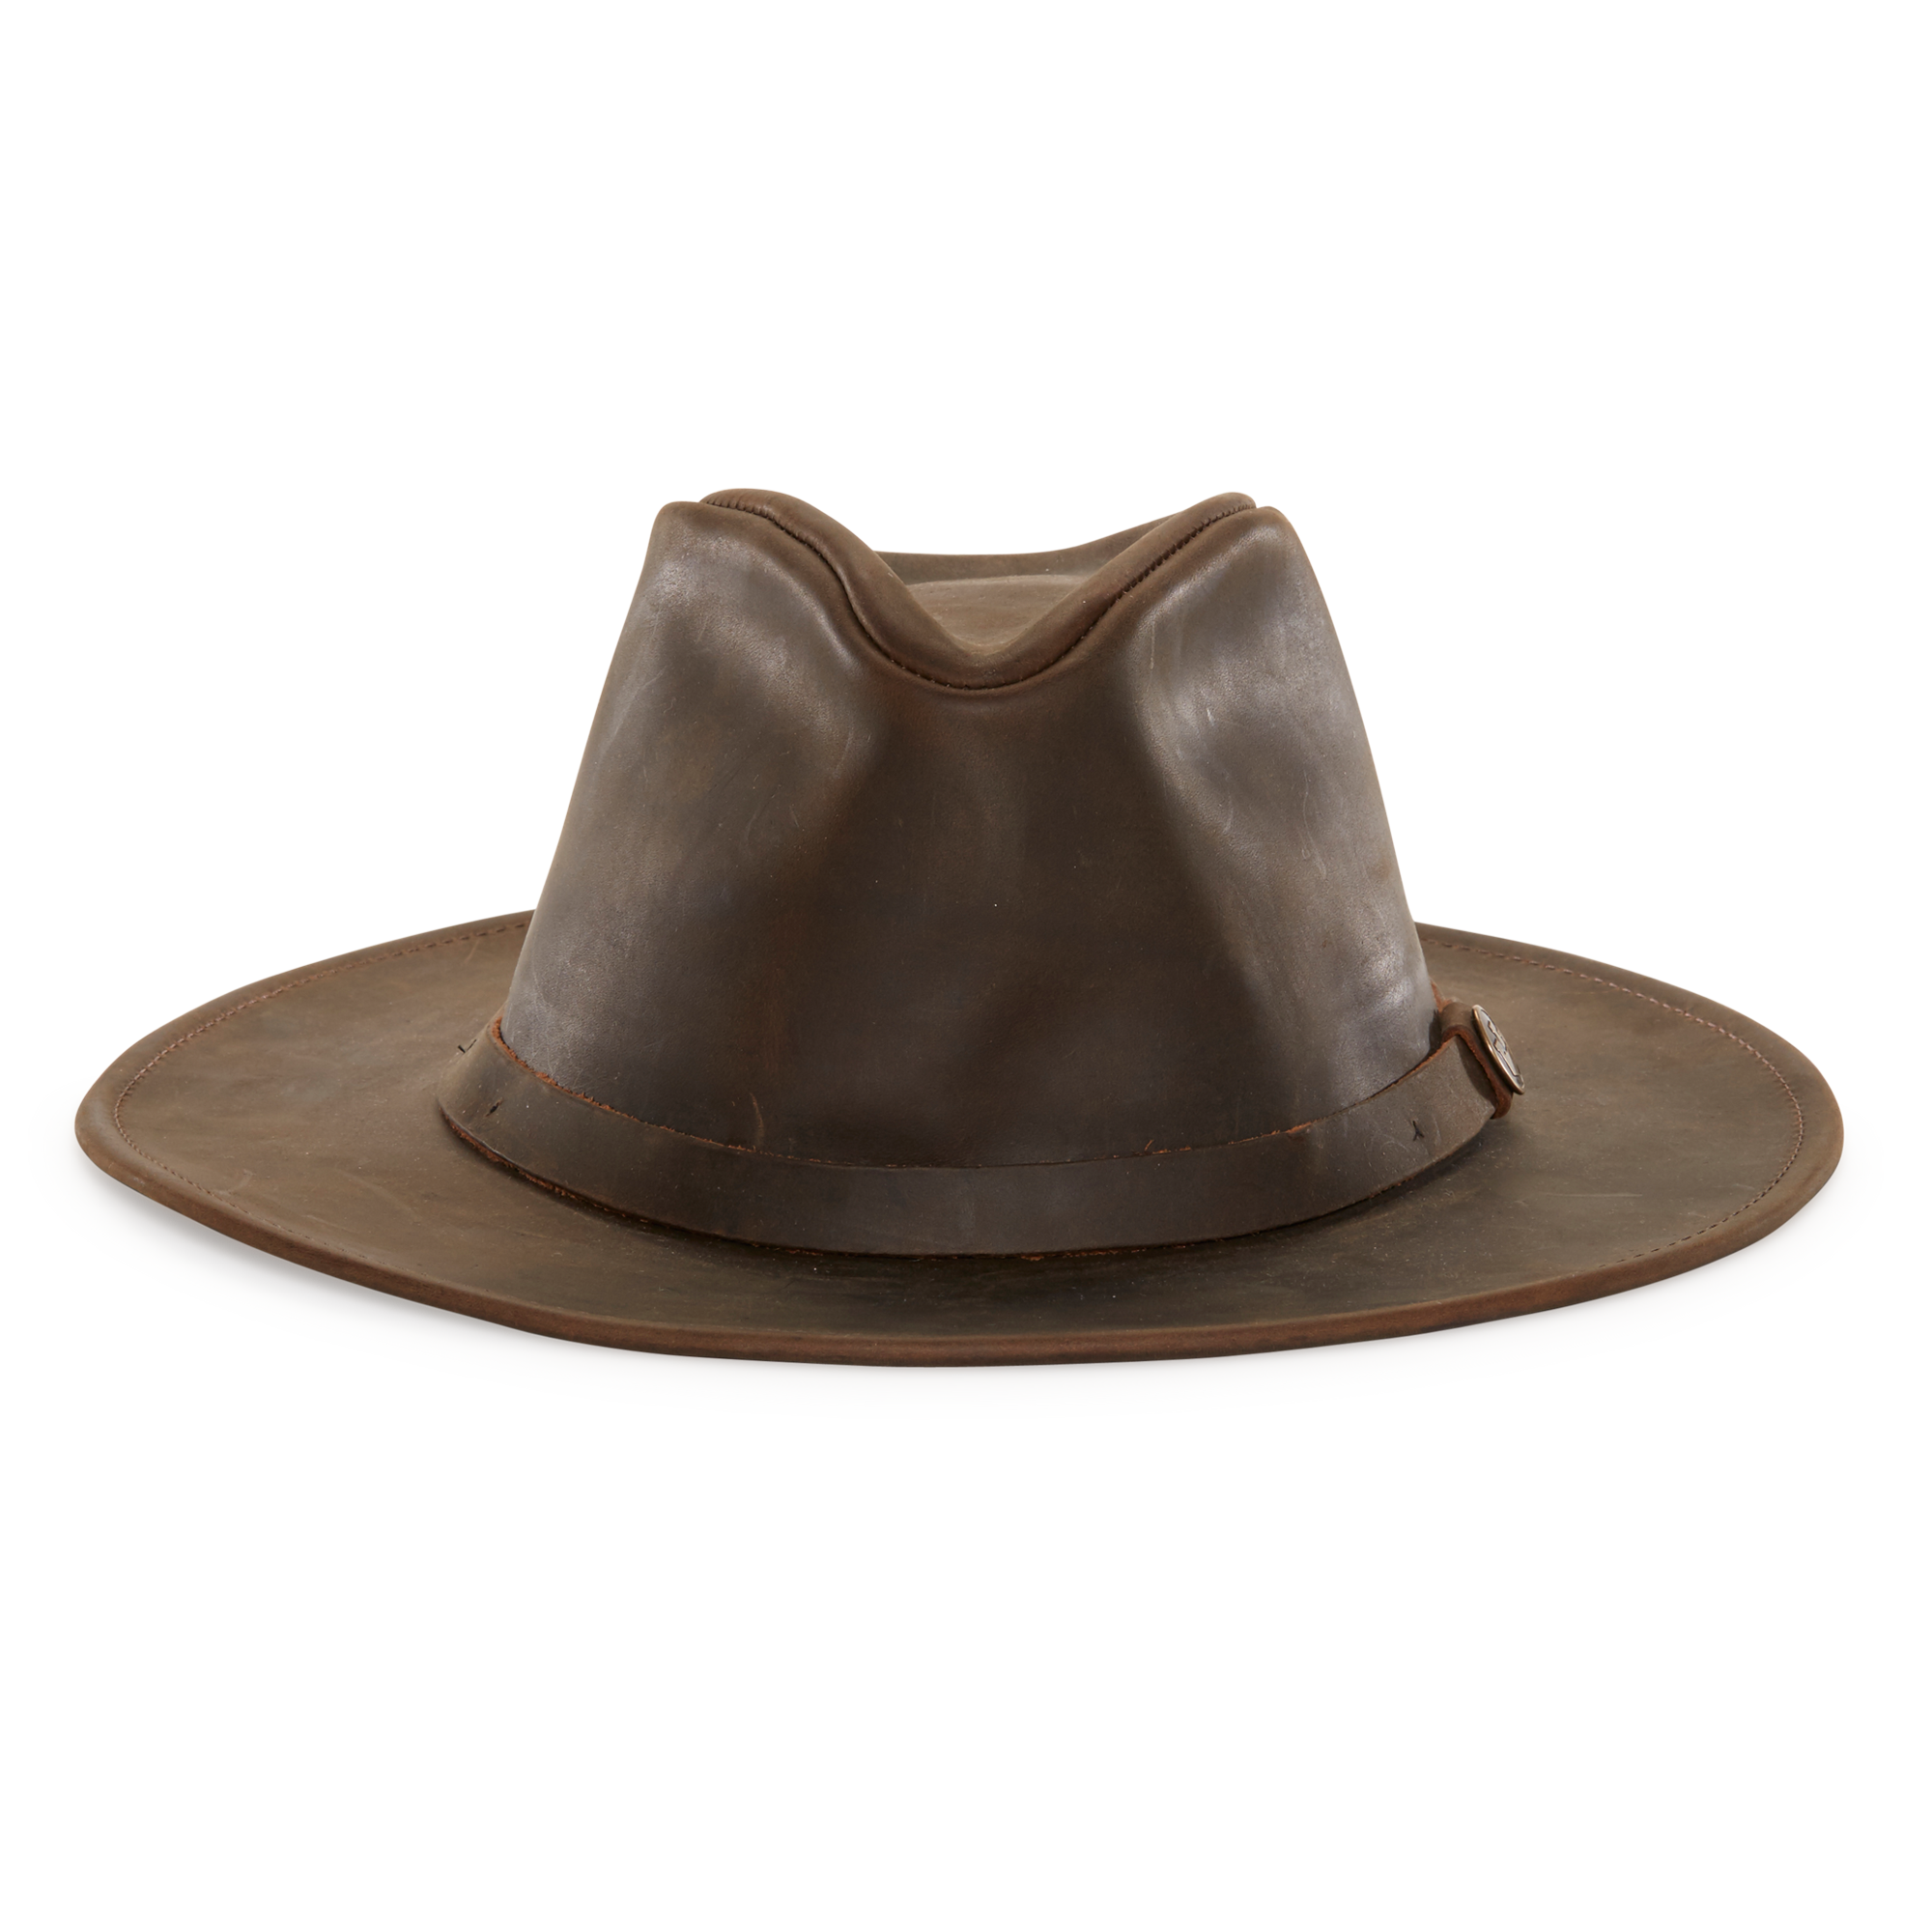 b49839f000417e North Fork leather wide brim fedora Men's hat with 2 1/2